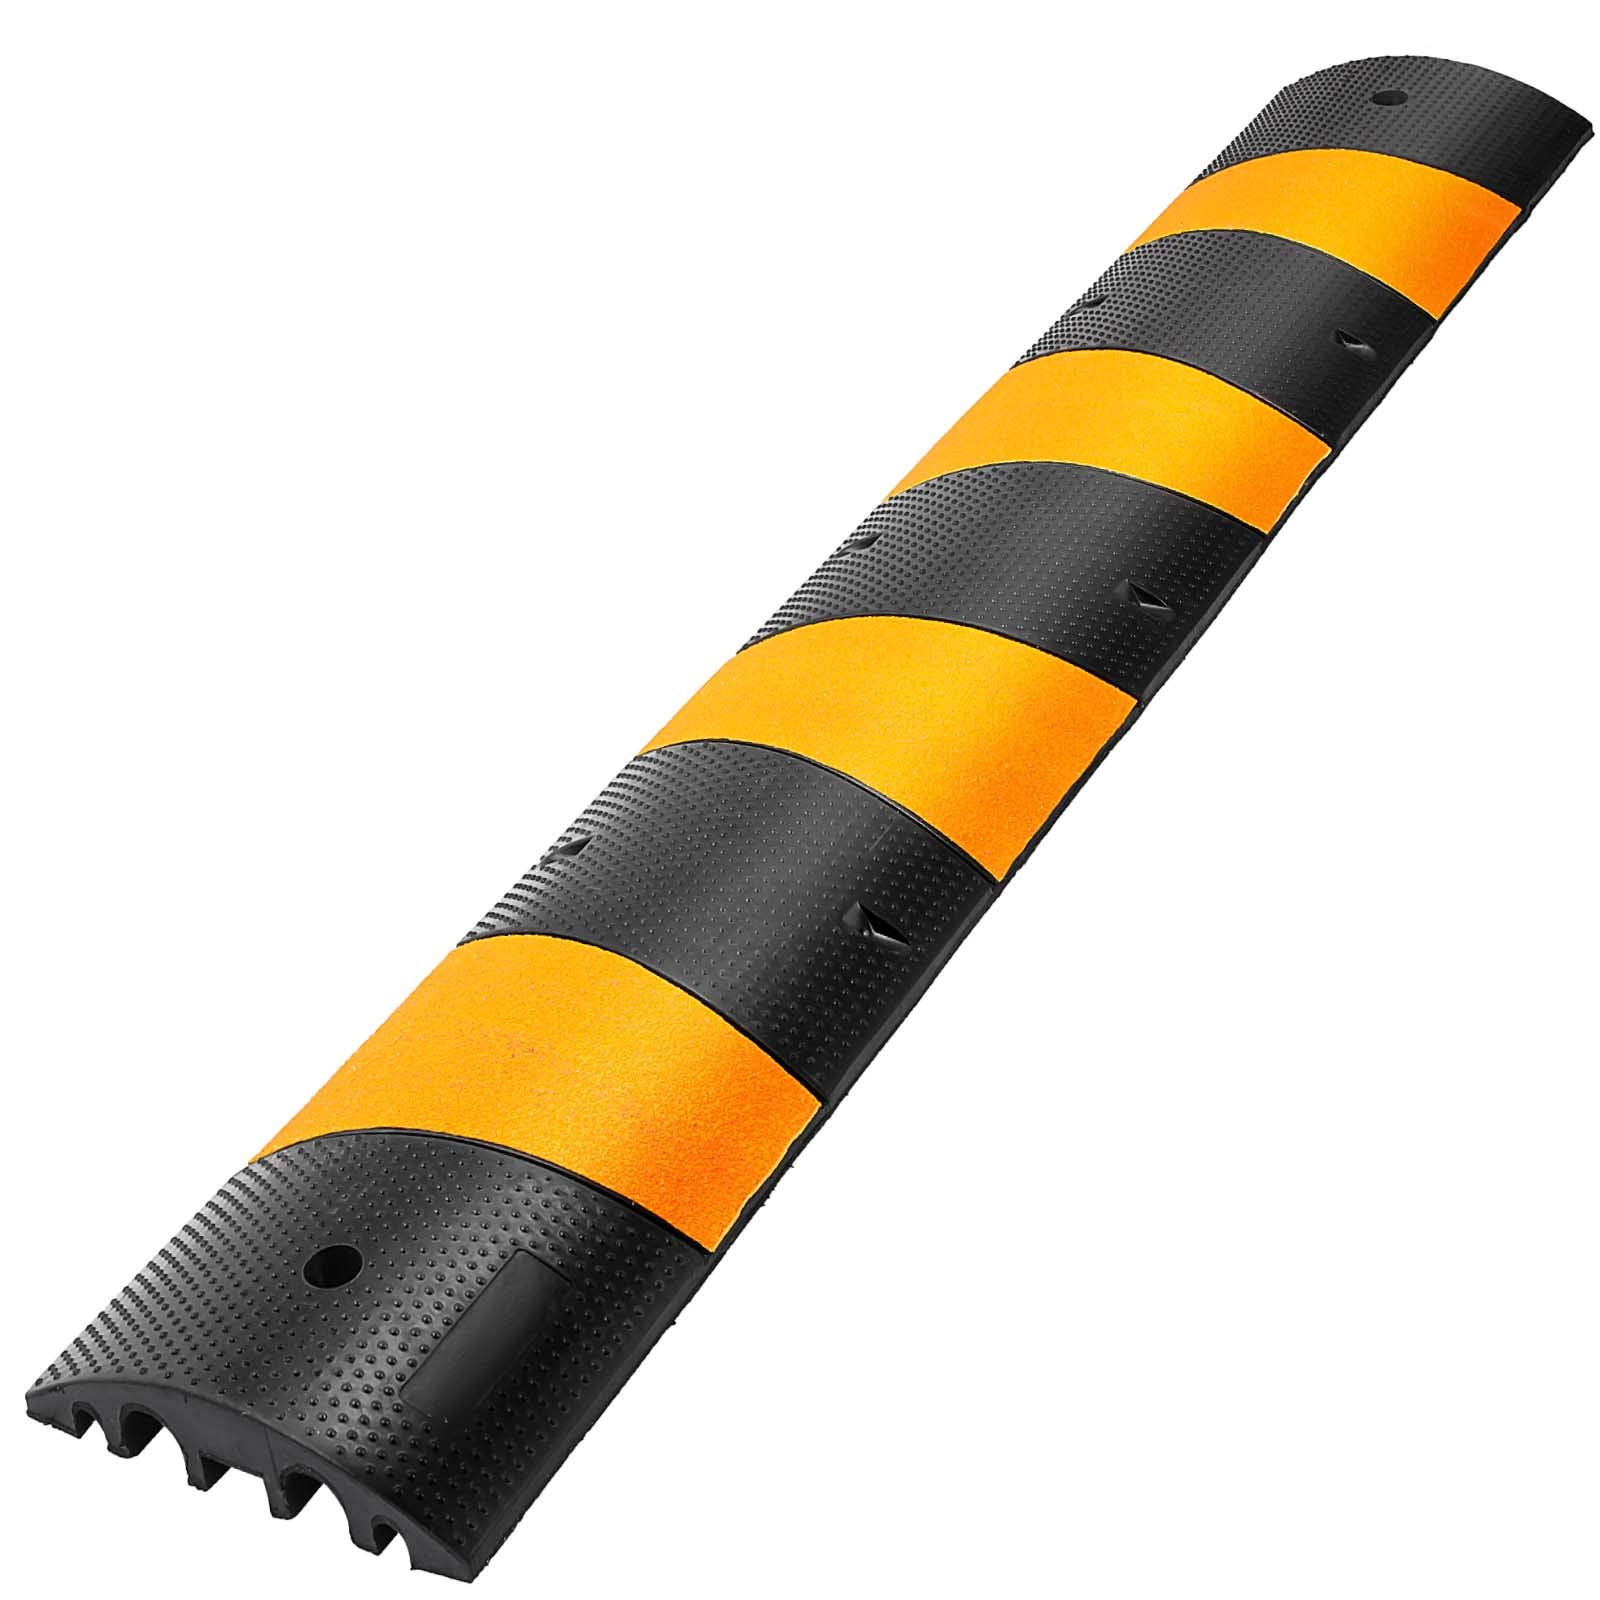 Happybuy 6 Feet Rubber Speed Bump Driveway Heavy Duty Cable Protector Ramp 72.4 x 12 x 2.4 Inch 2-Channel Speed Bumps for Garage Gravel Roads Asphalt Concrete